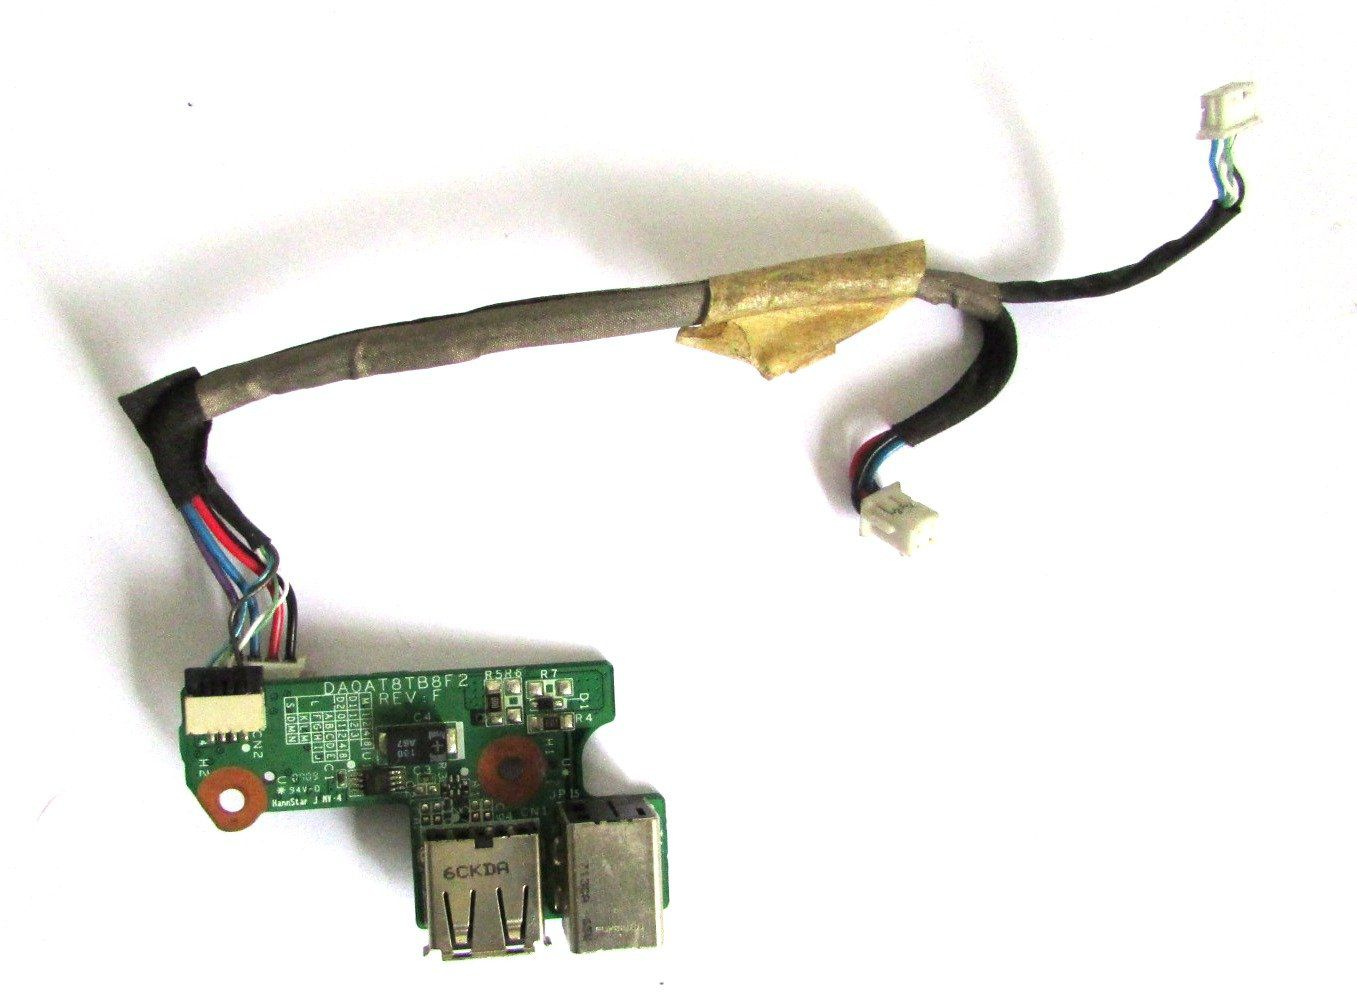 Placa Power Jack + Usb HP Dv6000 Daoat8tb8f2 439186-214 (semi novo)